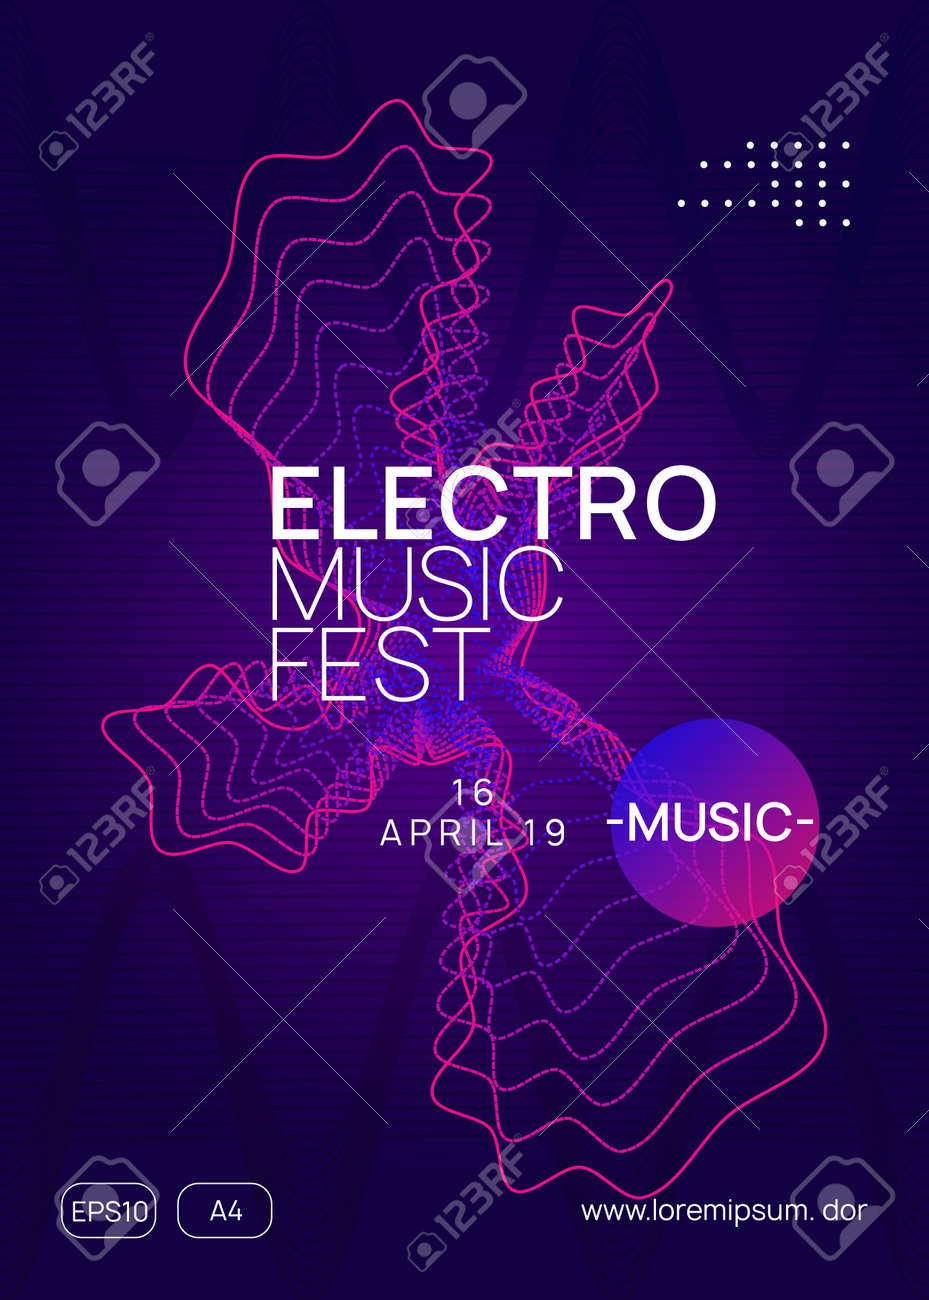 Techno Event Creative Concert Banner Design Dynamic Gradient Royalty Free Cliparts Vectors And Stock Illustration Image 124773056